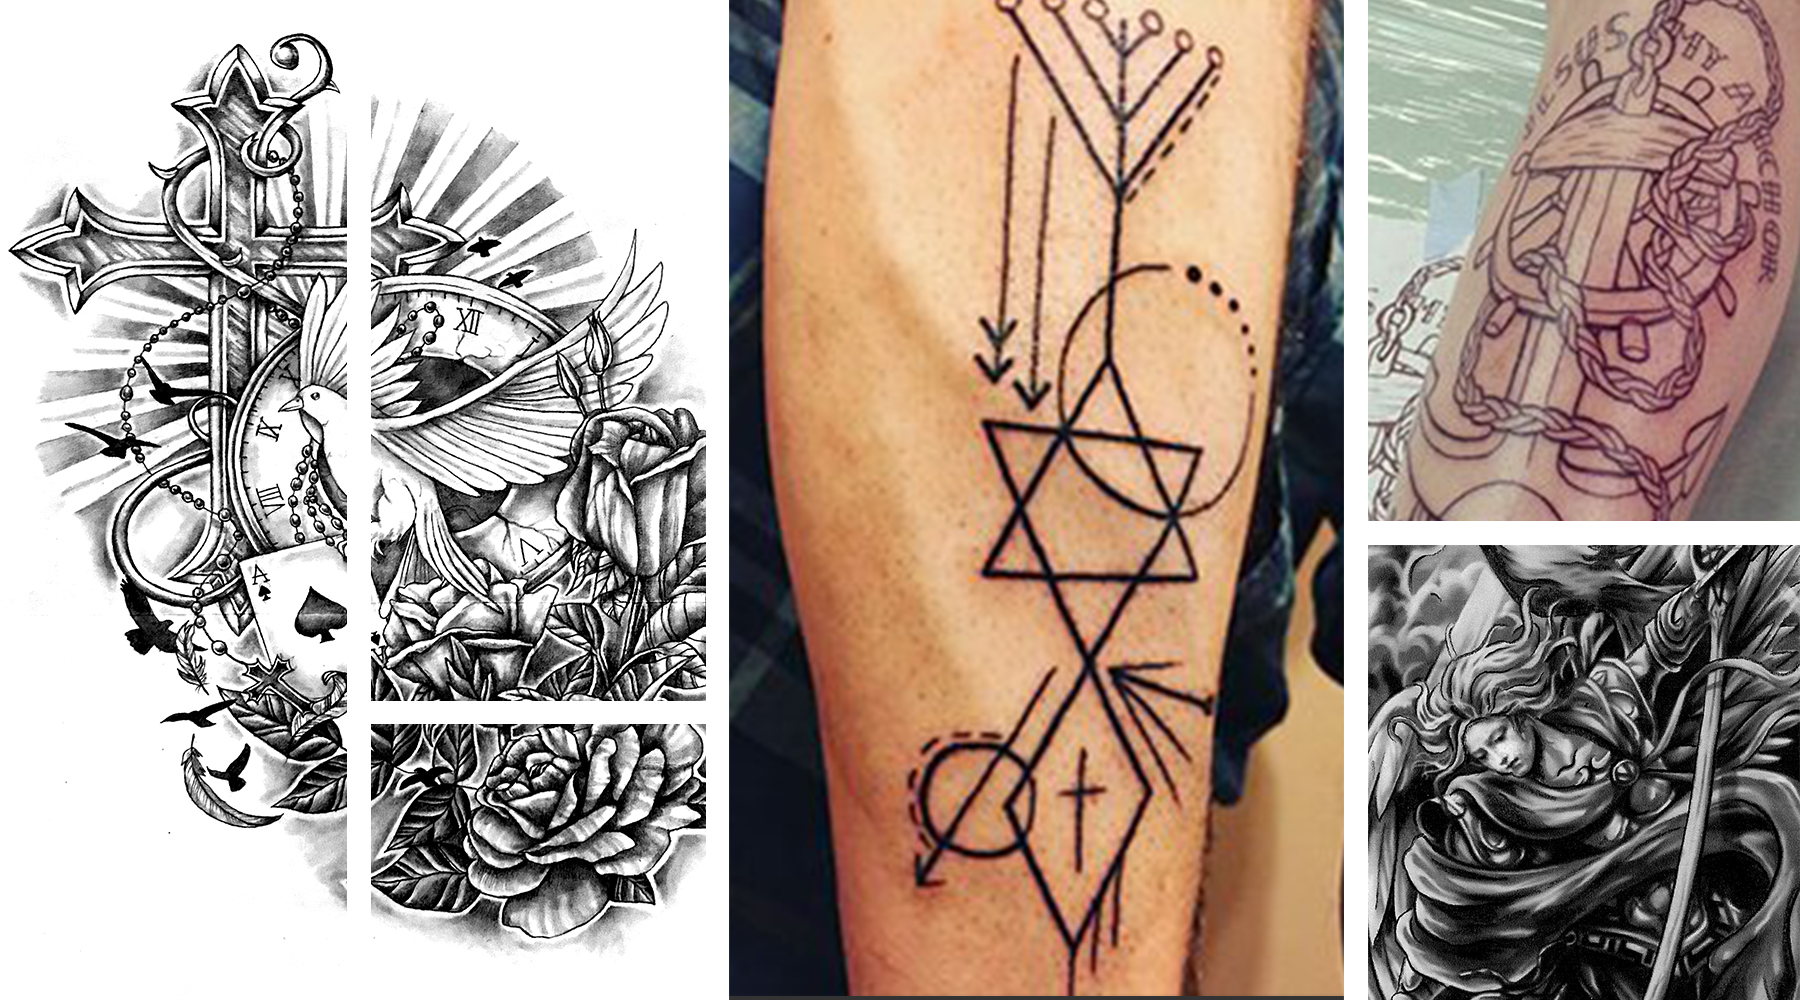 Some of the earliest tattoos in history were rooted in spiritual philosophies. In fact, many important spiritual or philosophical tattoo designs predated organized religion. Once religion became wides...